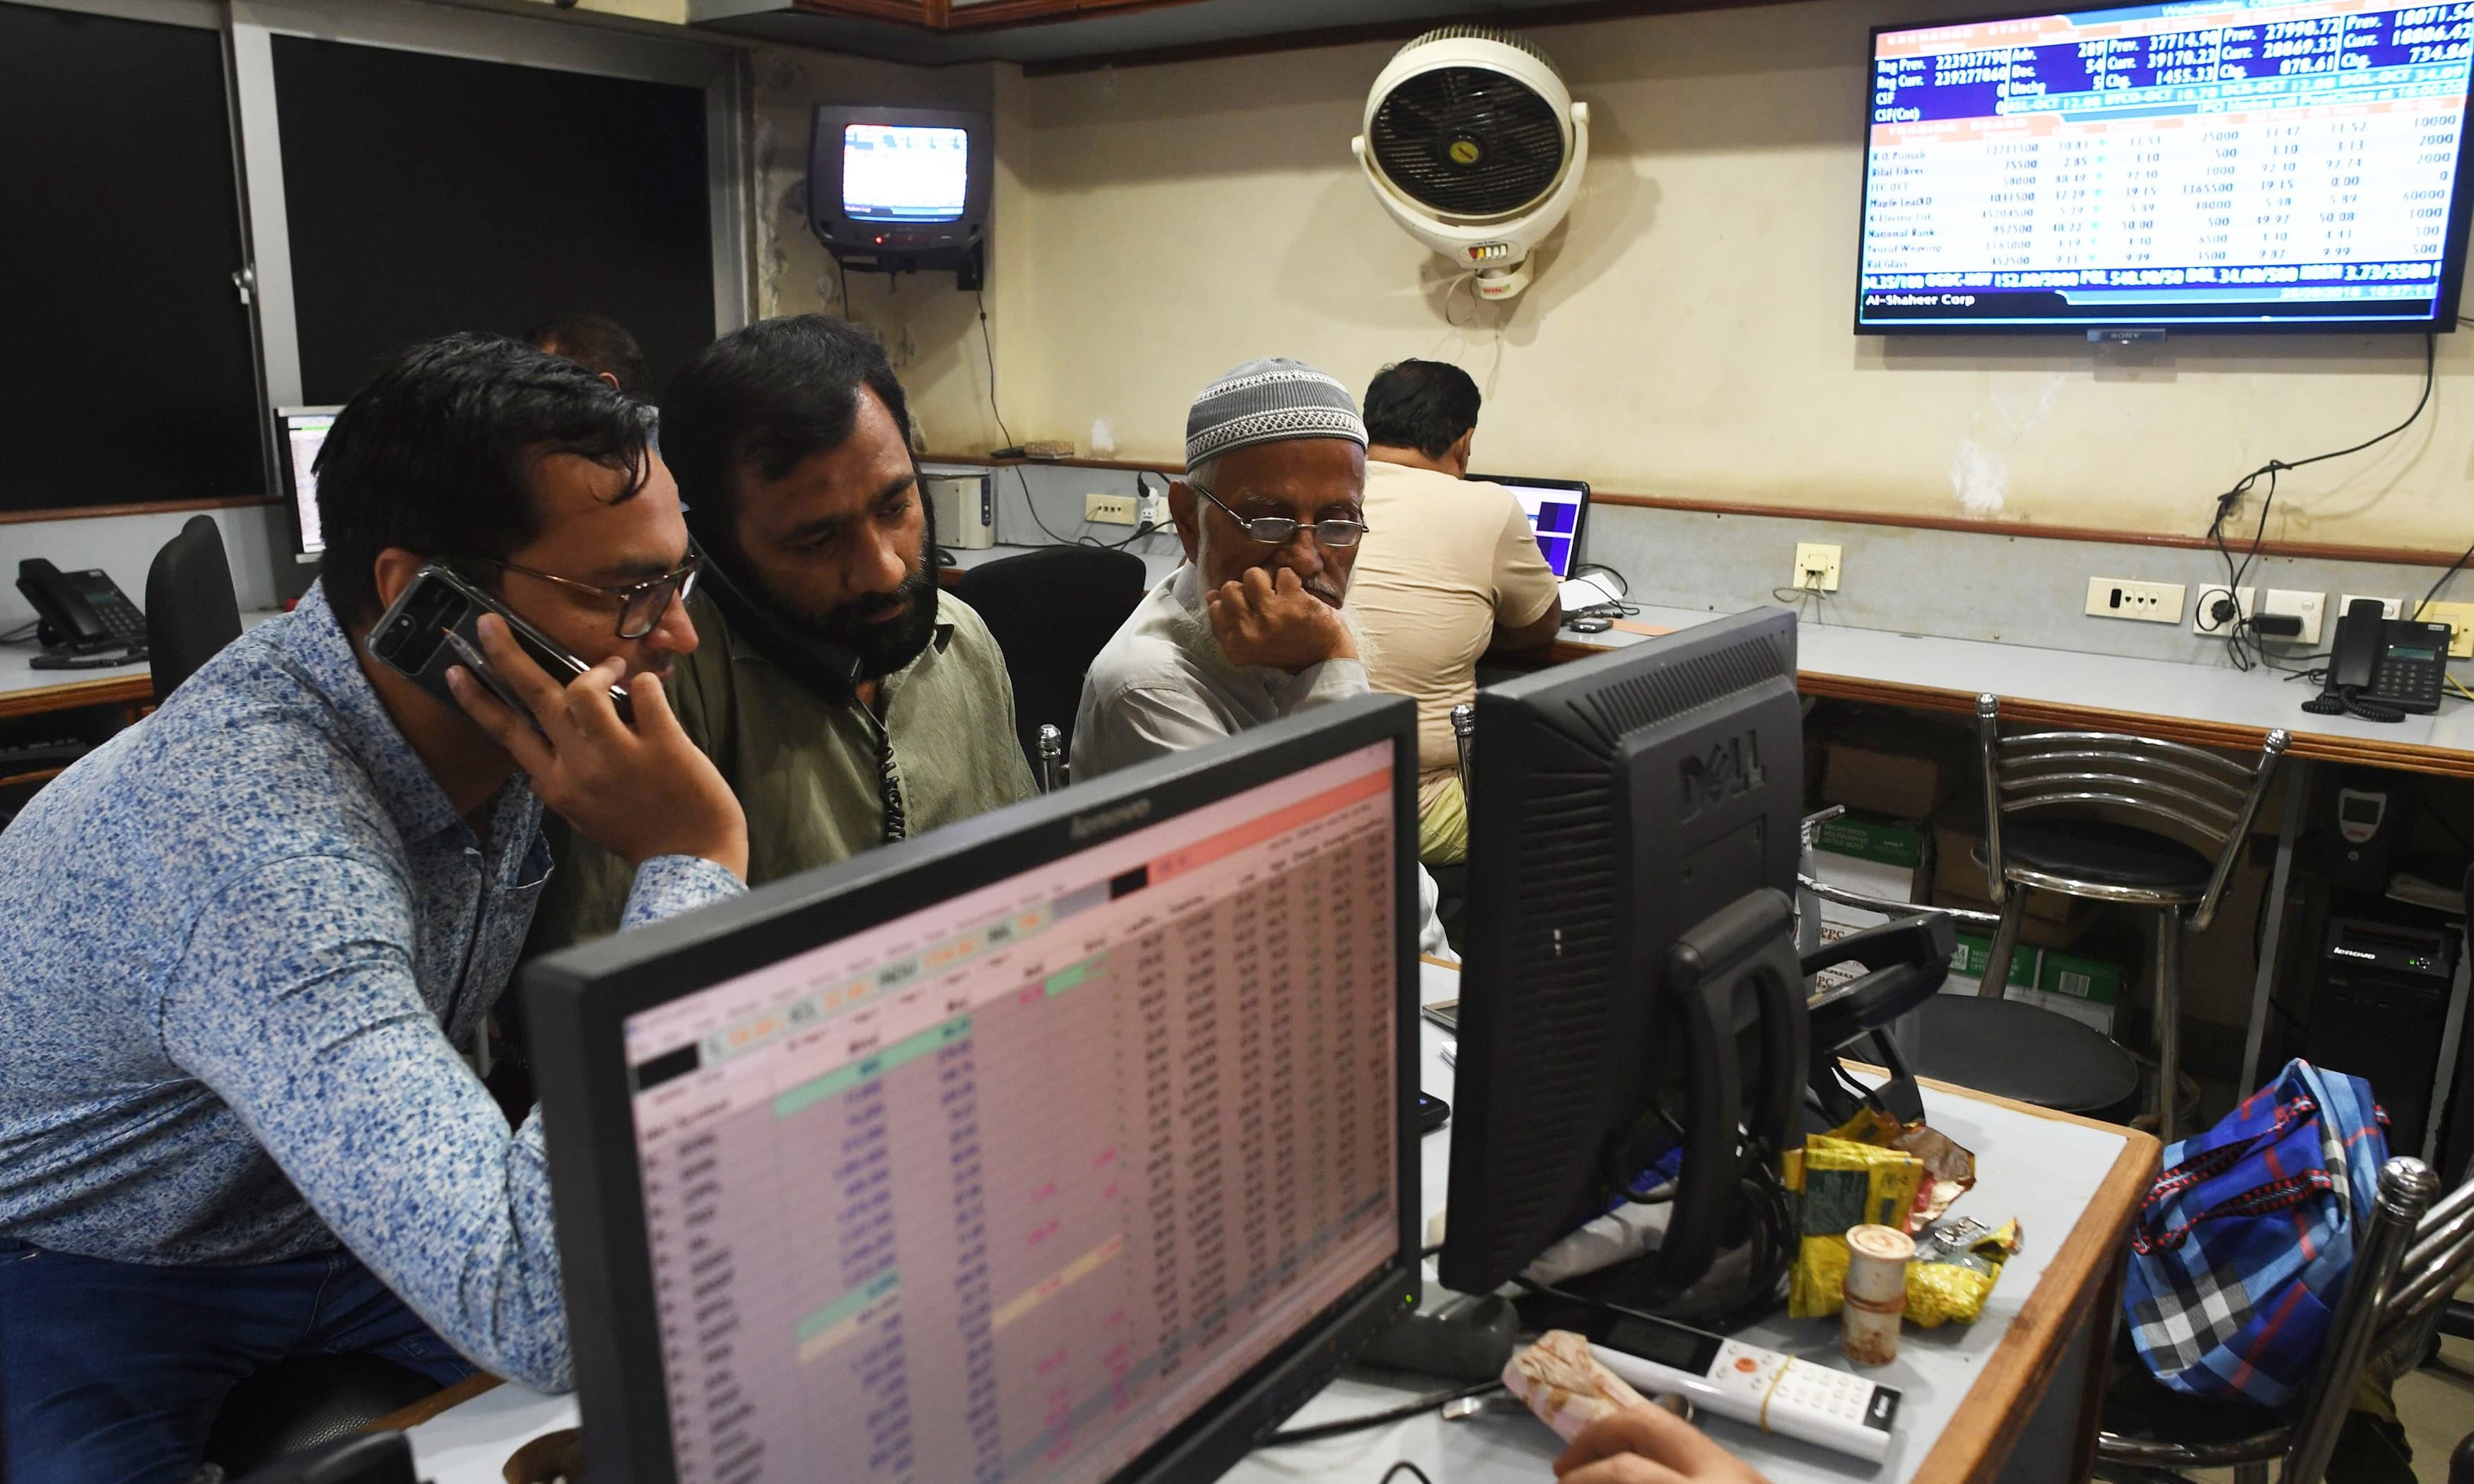 The KSE-100 index spiralled upwards by 487.63 points to close at 30,954.83. — AFP/File